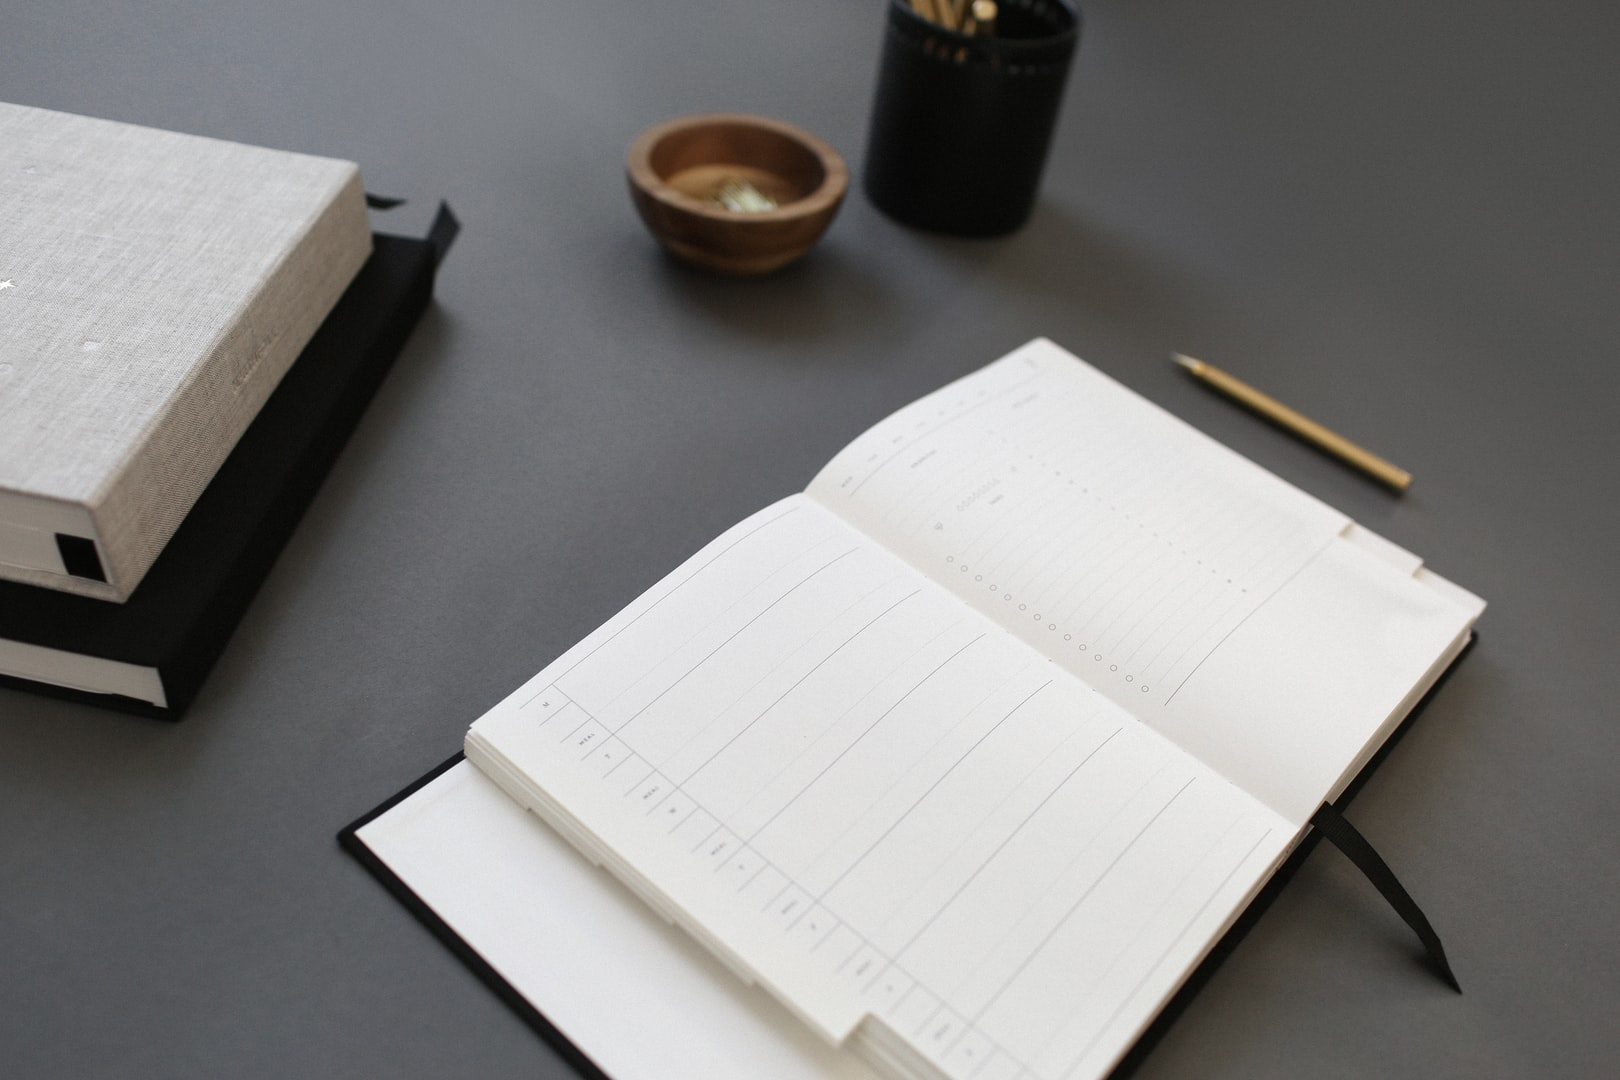 Picture of a diary open on a desk